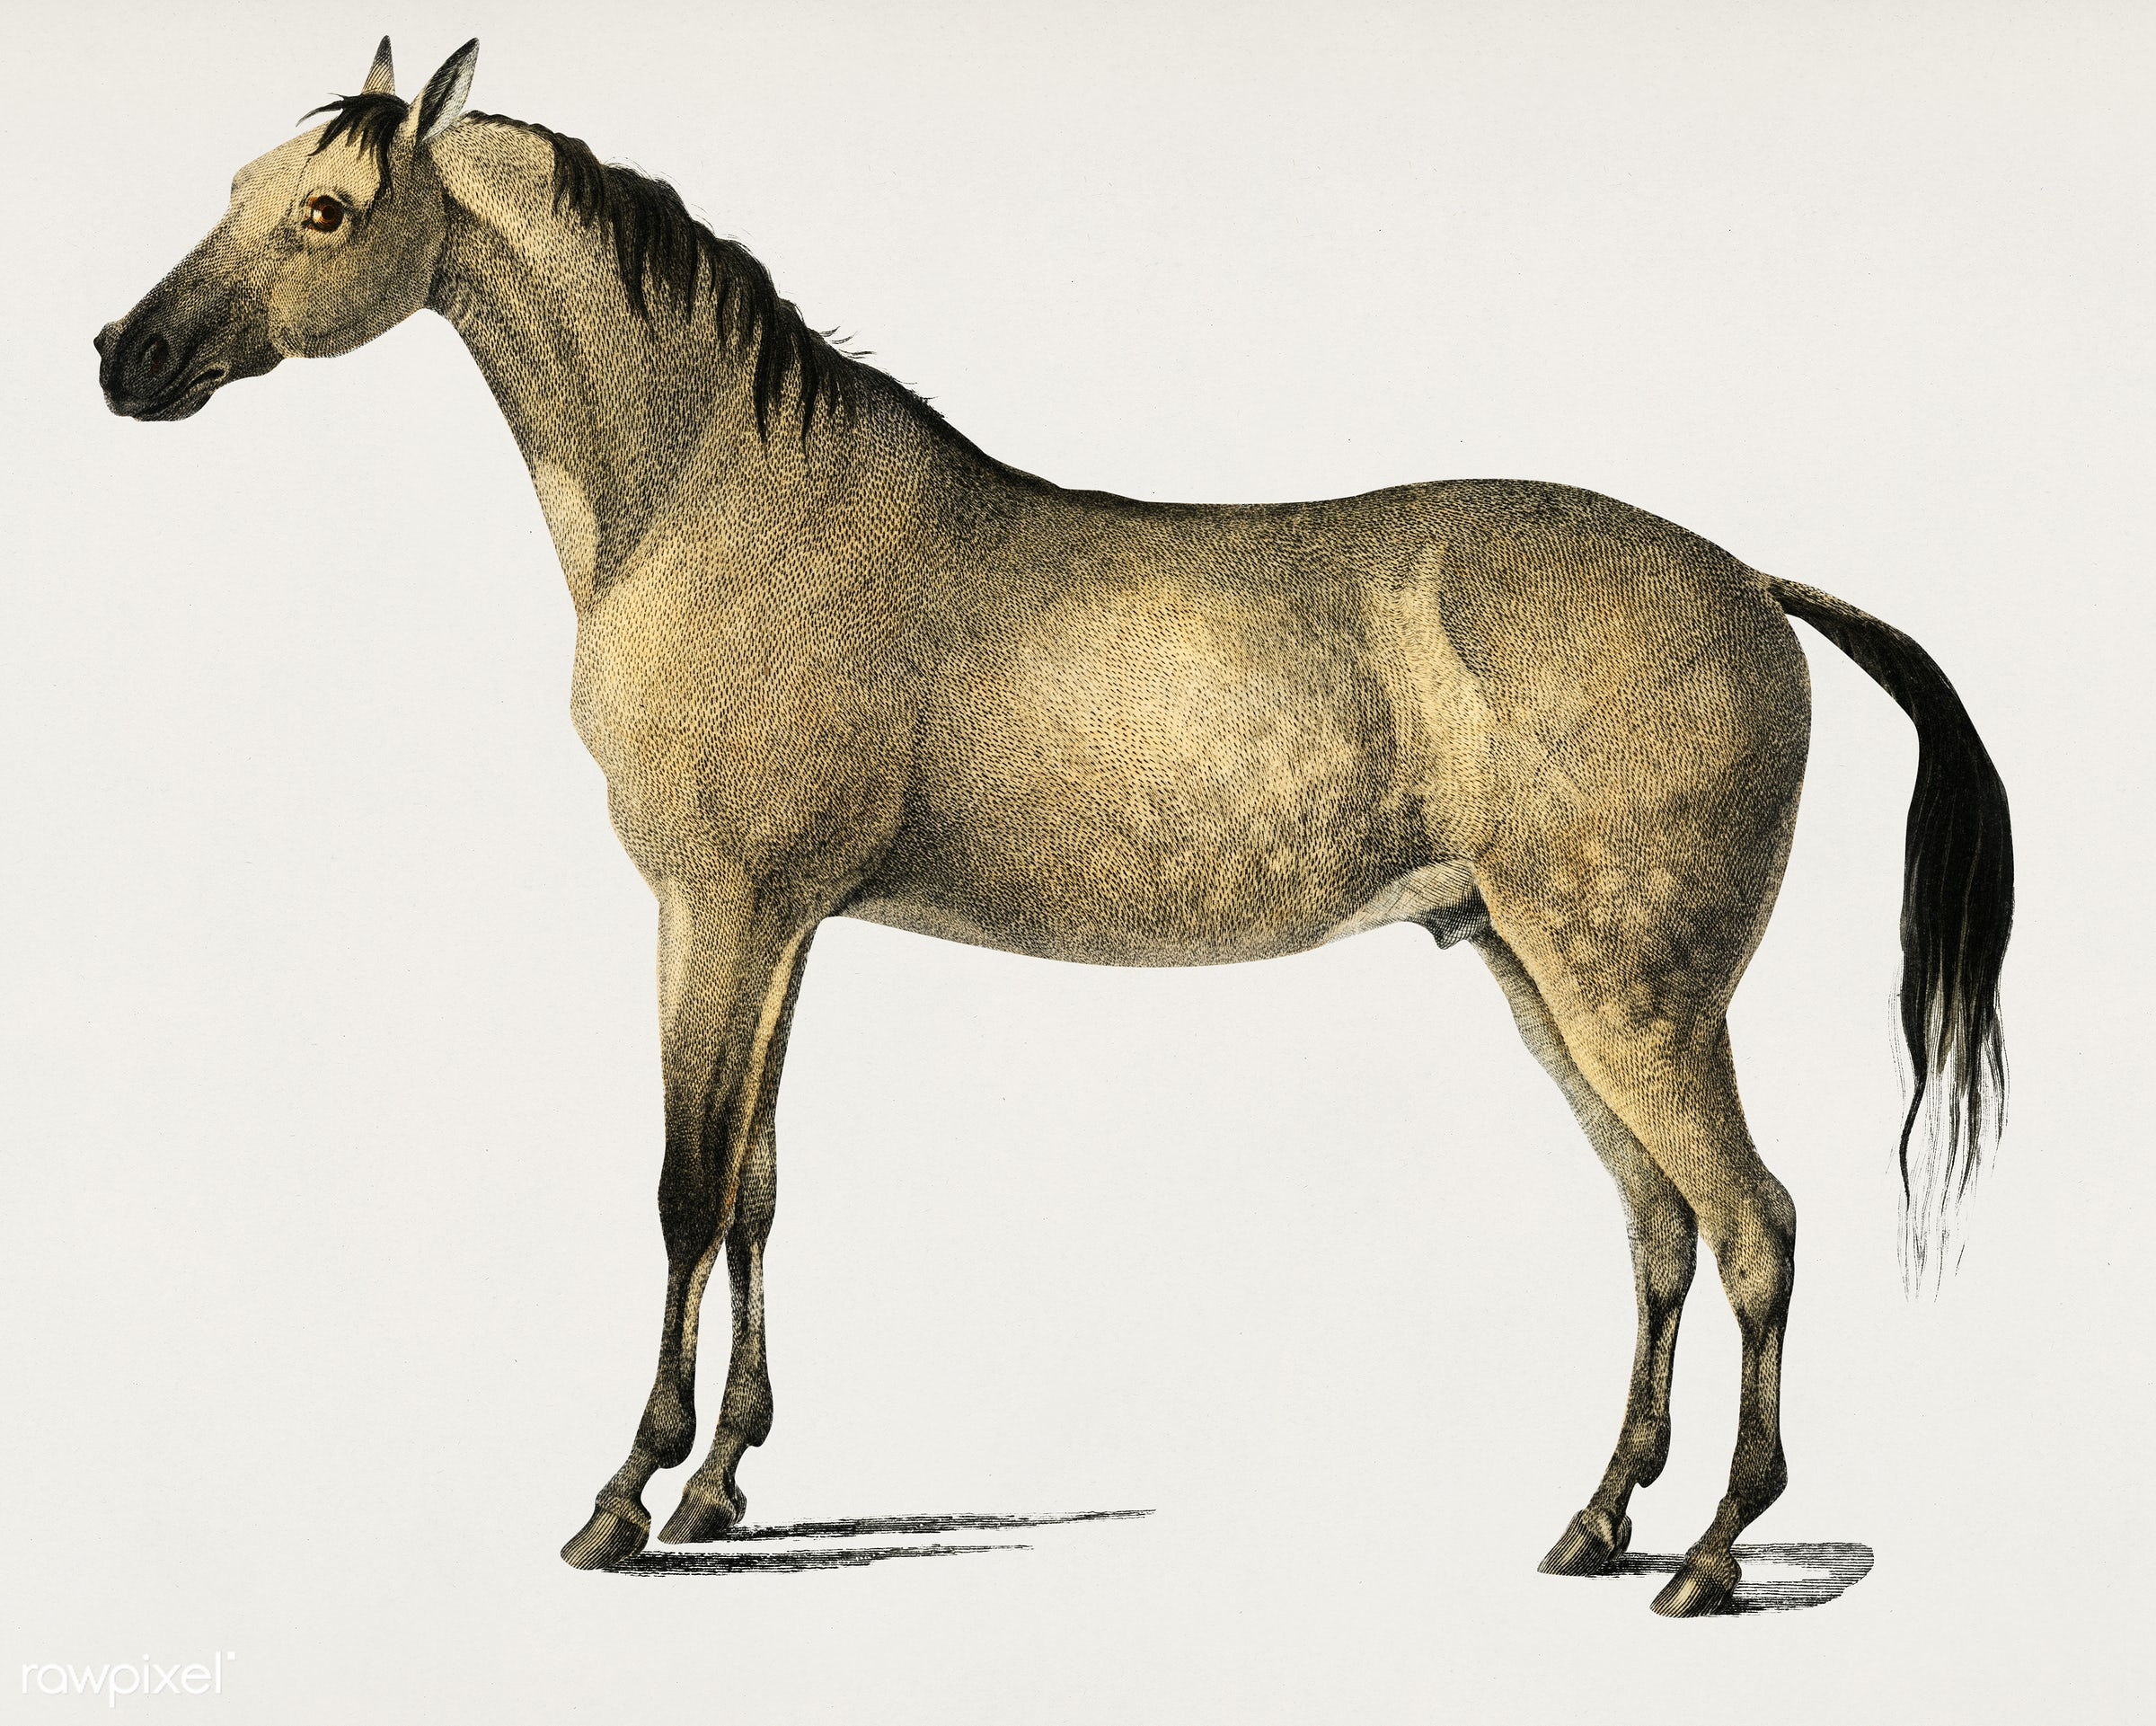 Horse (Equus ferus caballus) illustrated by Charles Dessalines D' Orbigny (1806-1876). Digitally enhanced from our own...